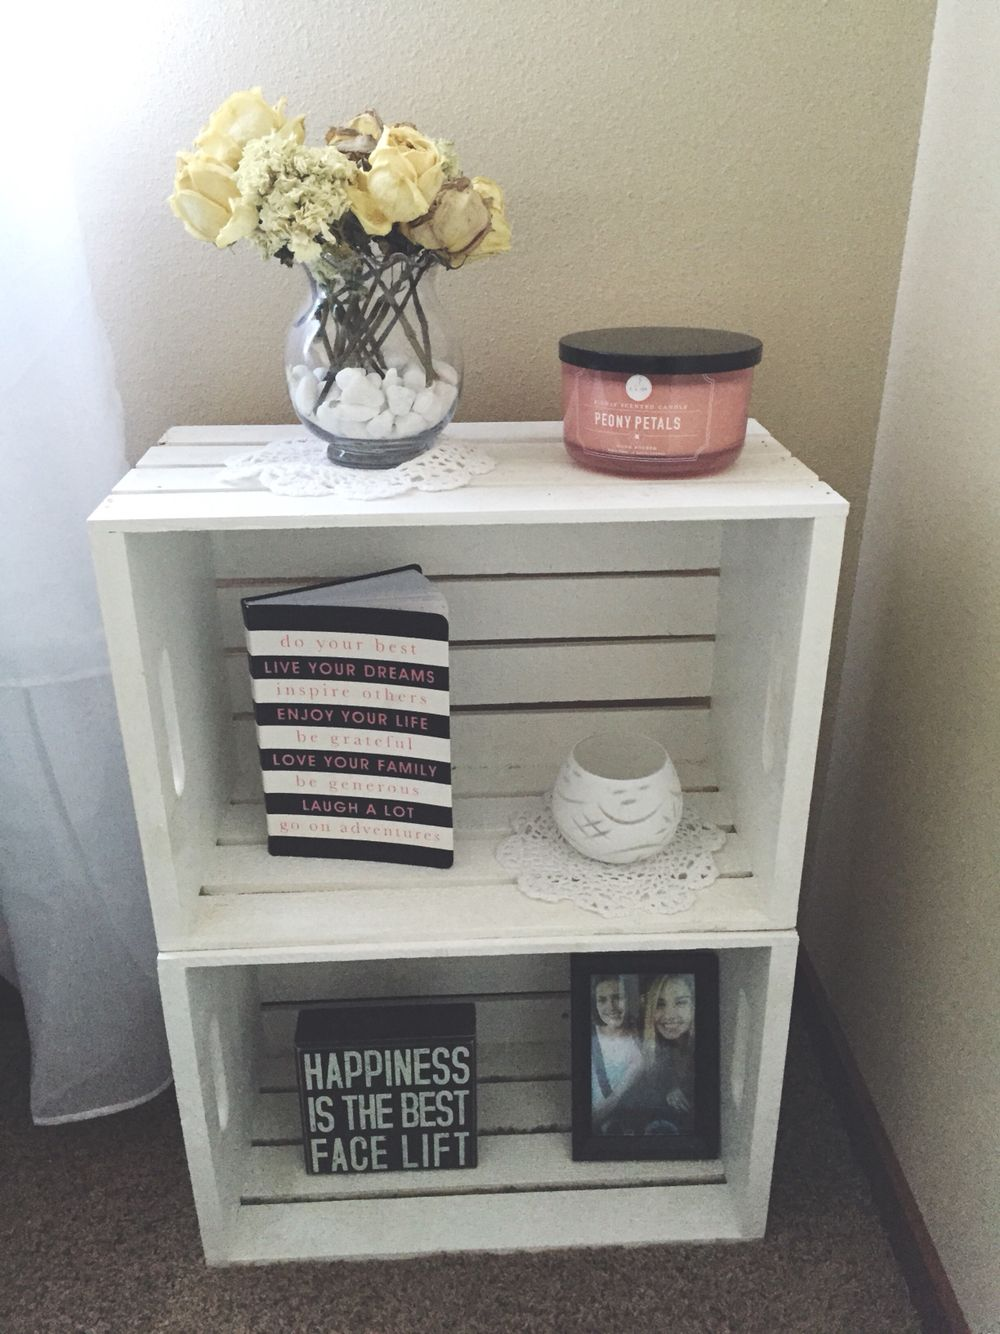 Explore Crate Nightstand, Nightstand Ideas, and more!